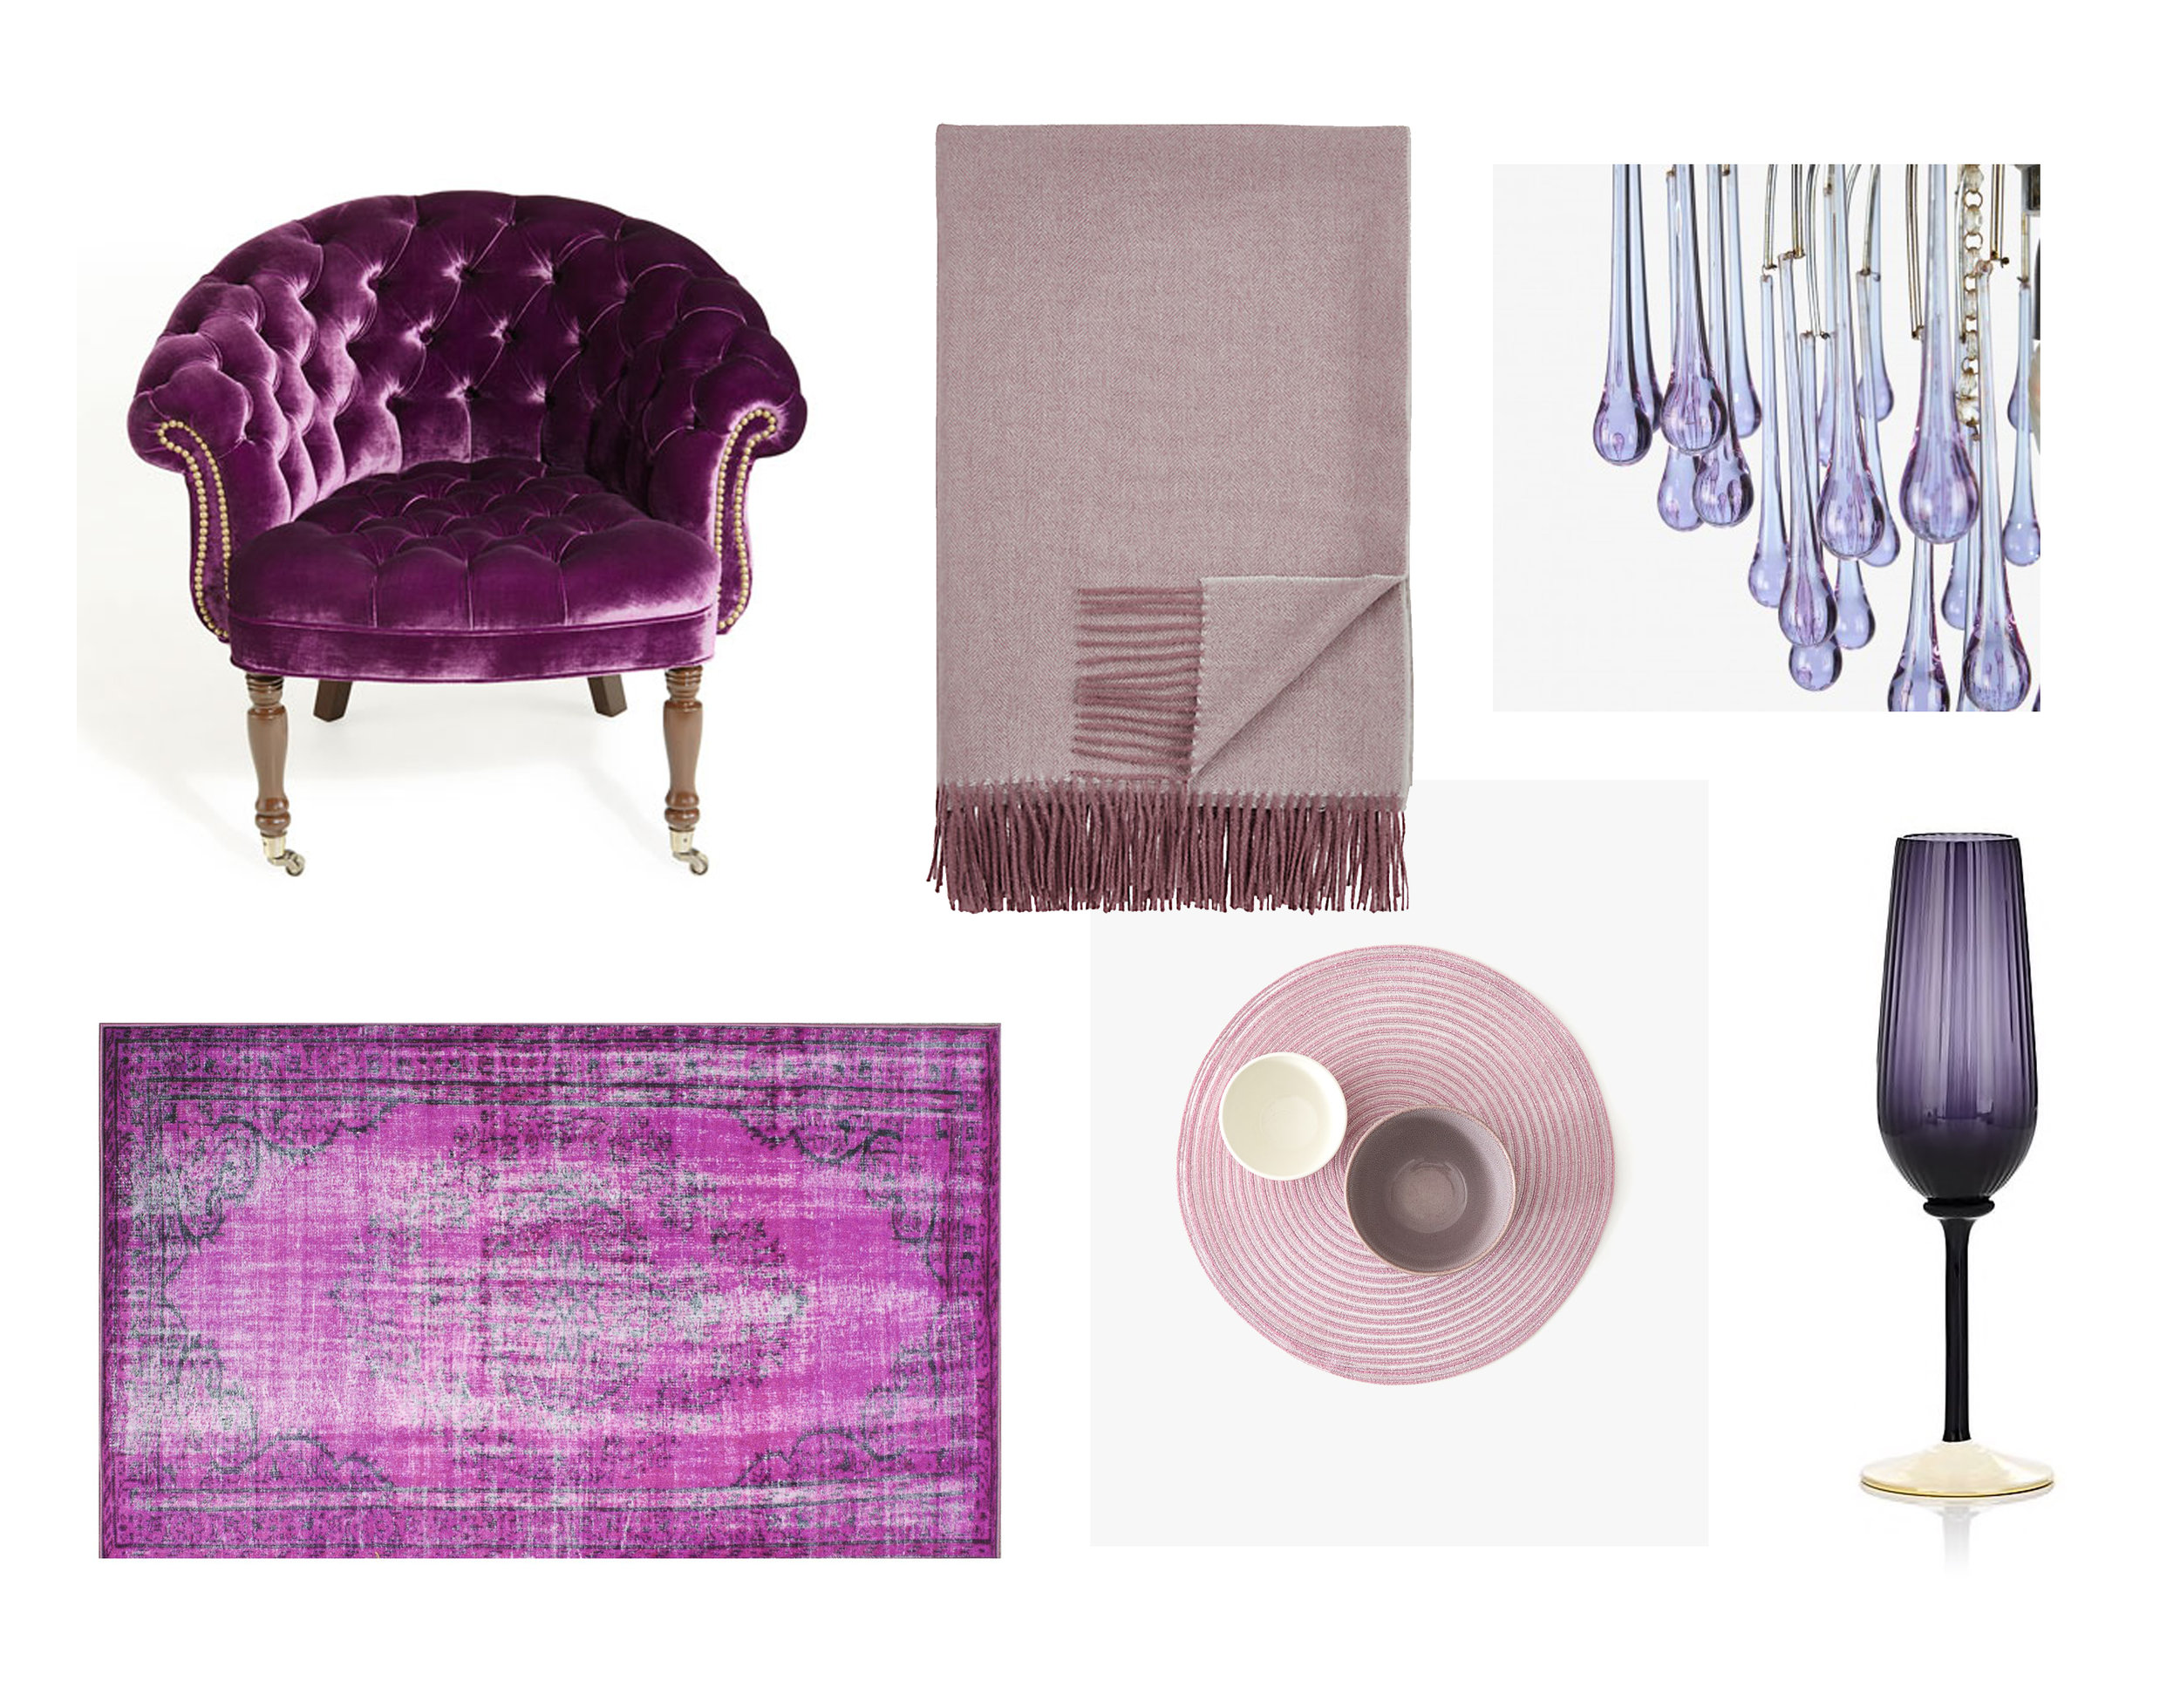 CHANDELIER  |  RUG  |  PLACEMAT  |  THROW  |  CHAMPAGNE FLUTE  |  CHAIR